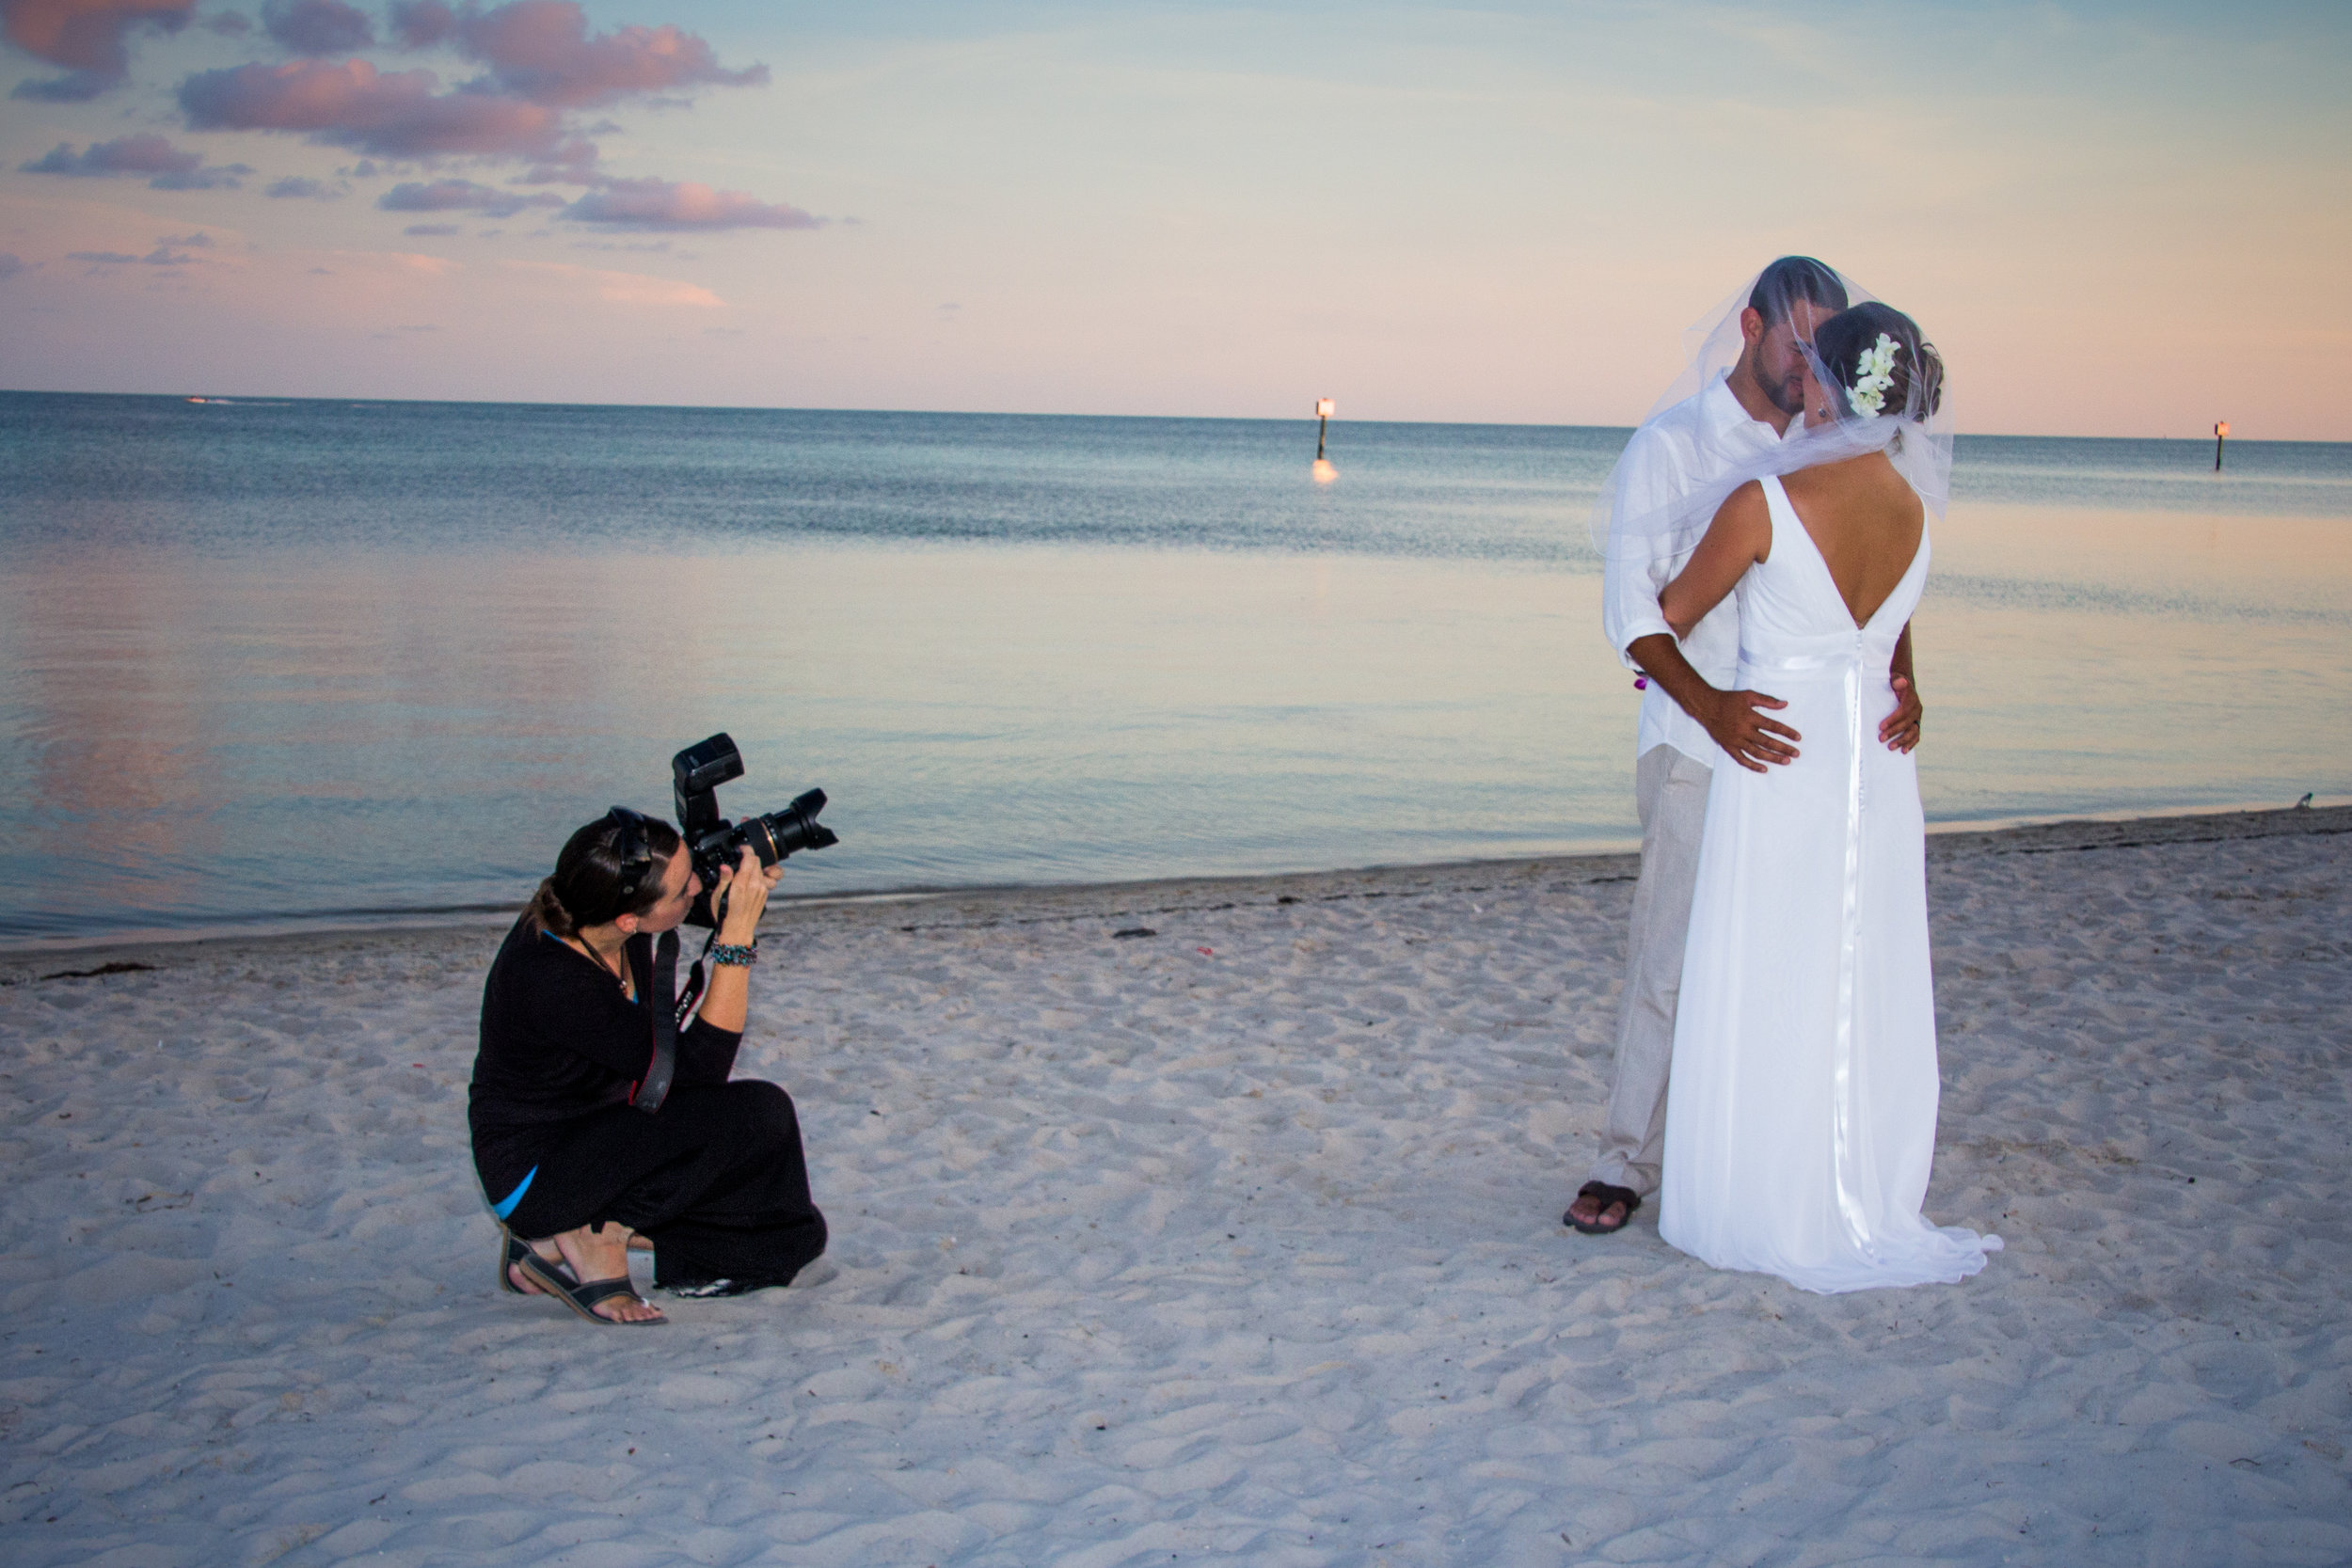 Karrie Porter Key West Photographer taking picture of bride and groom on beach